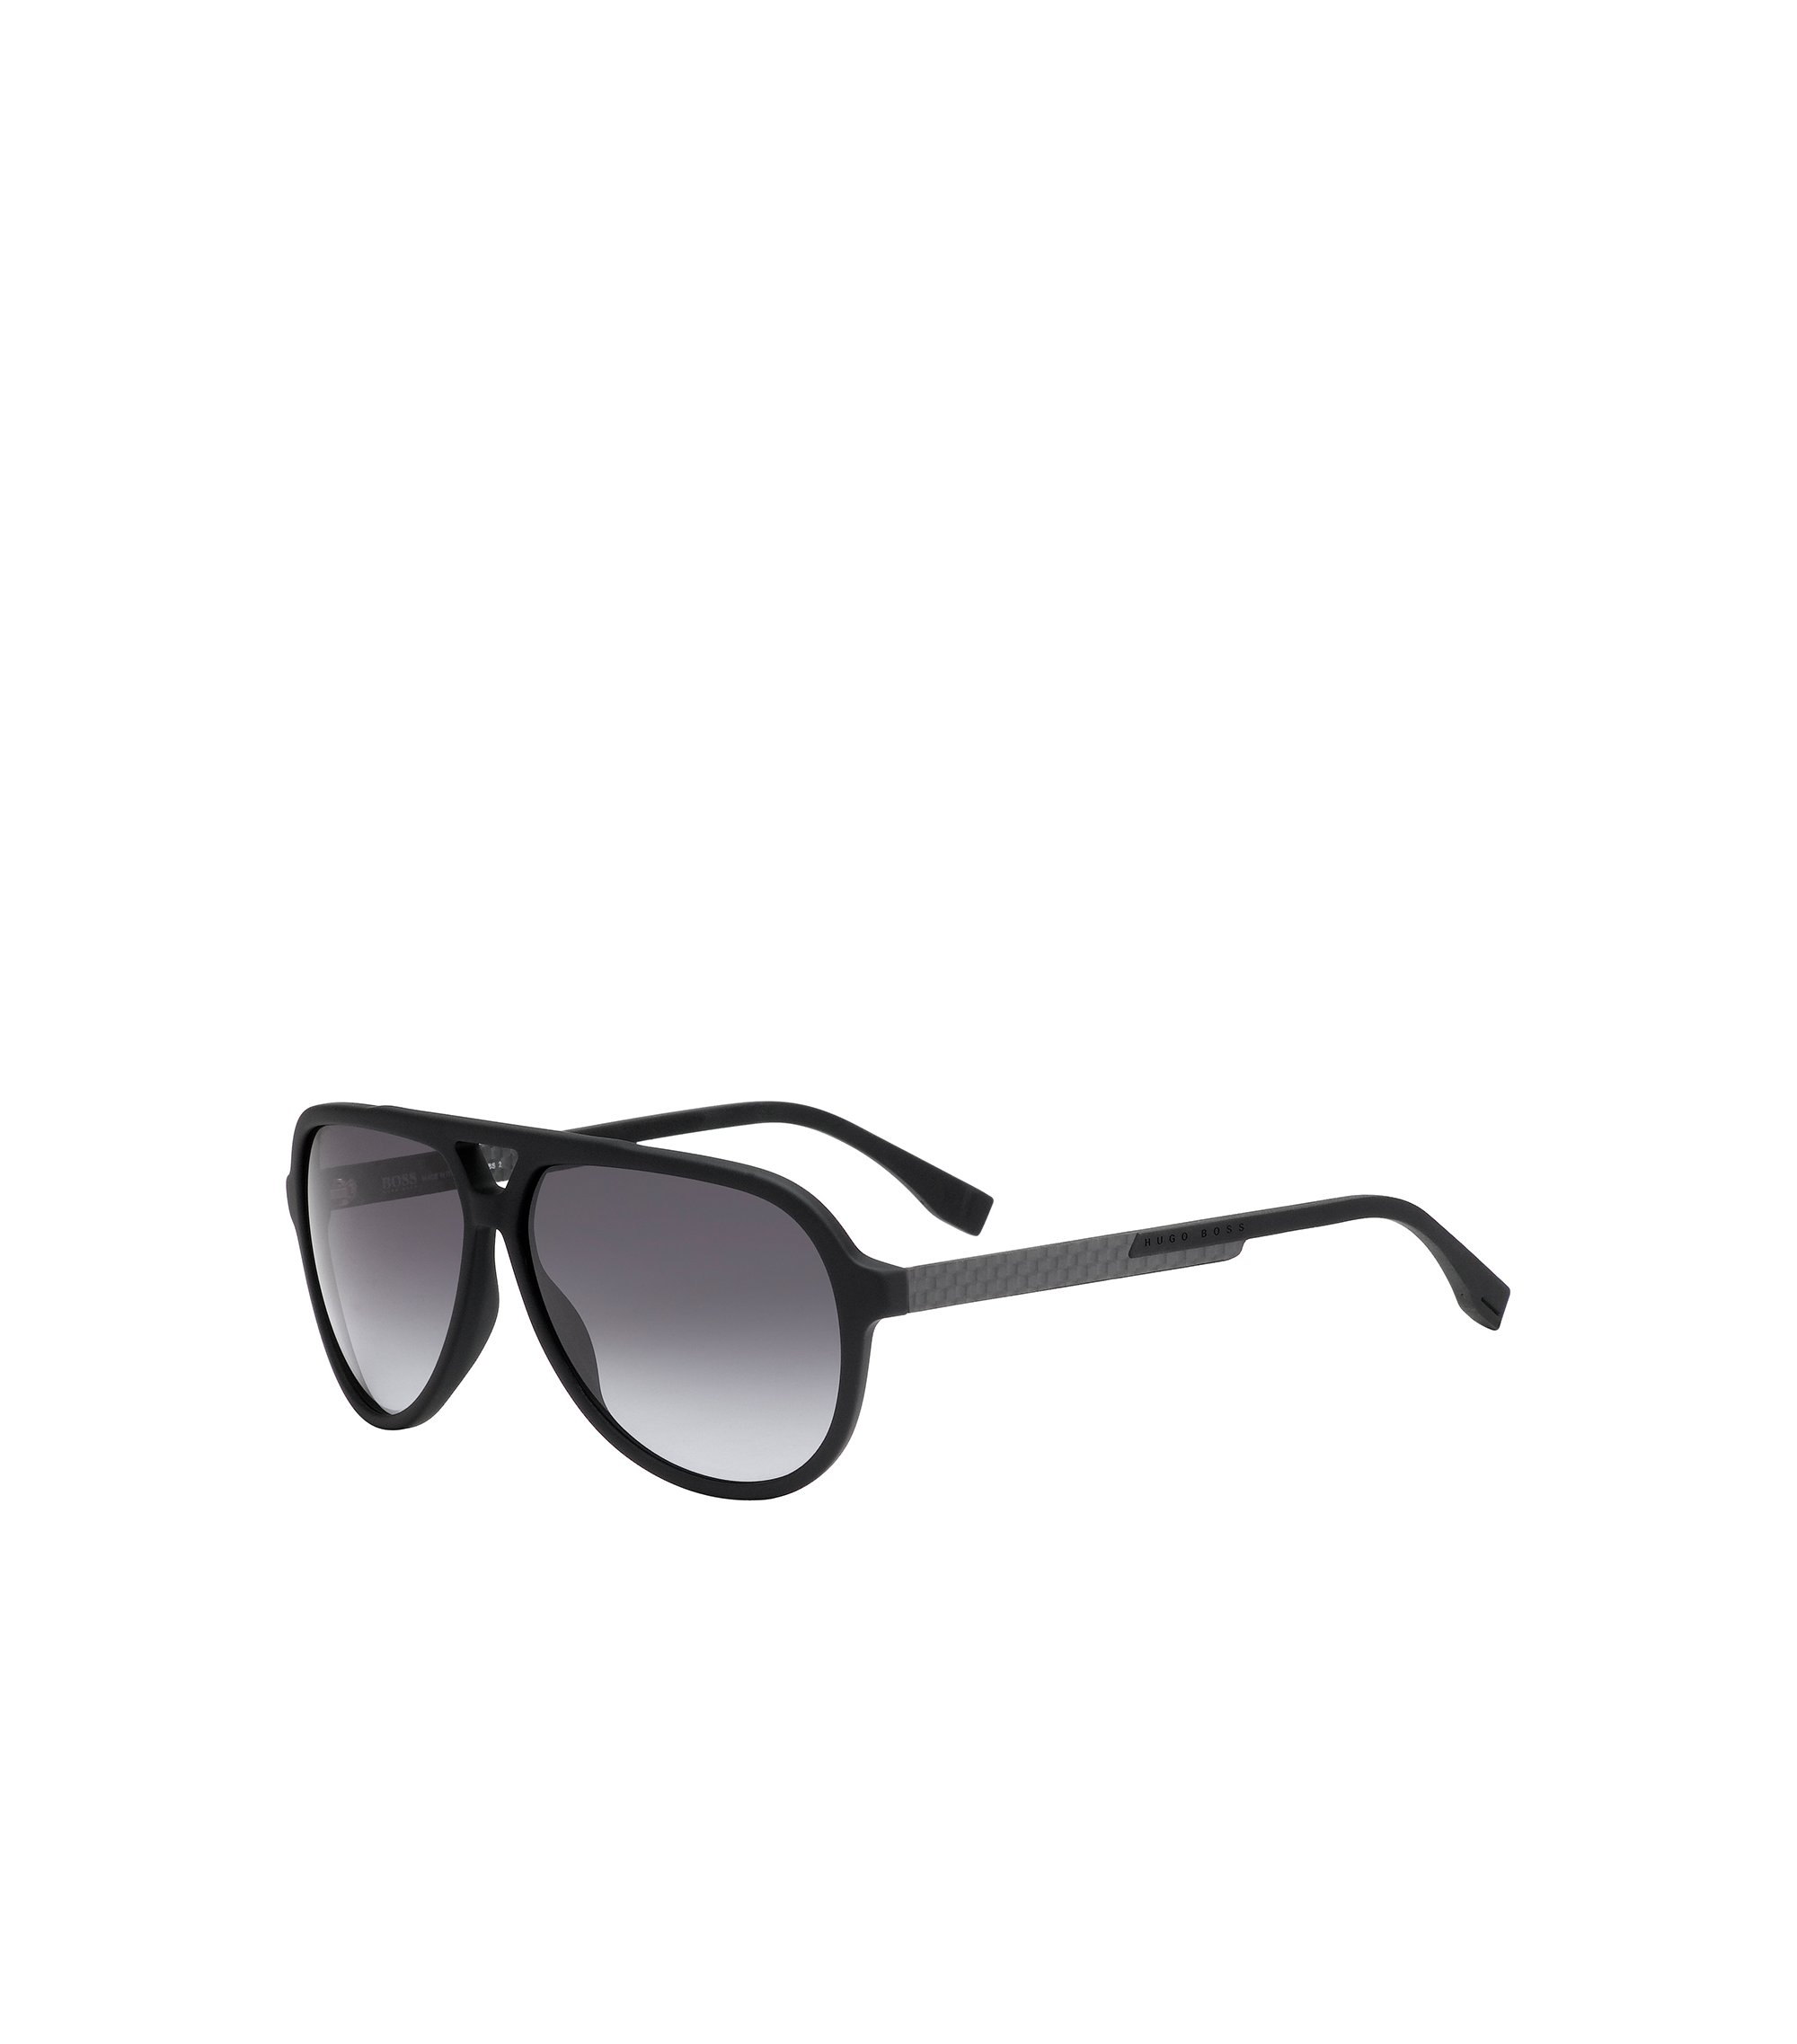 'BOSS 0731S' | Gray Lens Carbon Fiber Aviator Sunglasses, Assorted-Pre-Pack